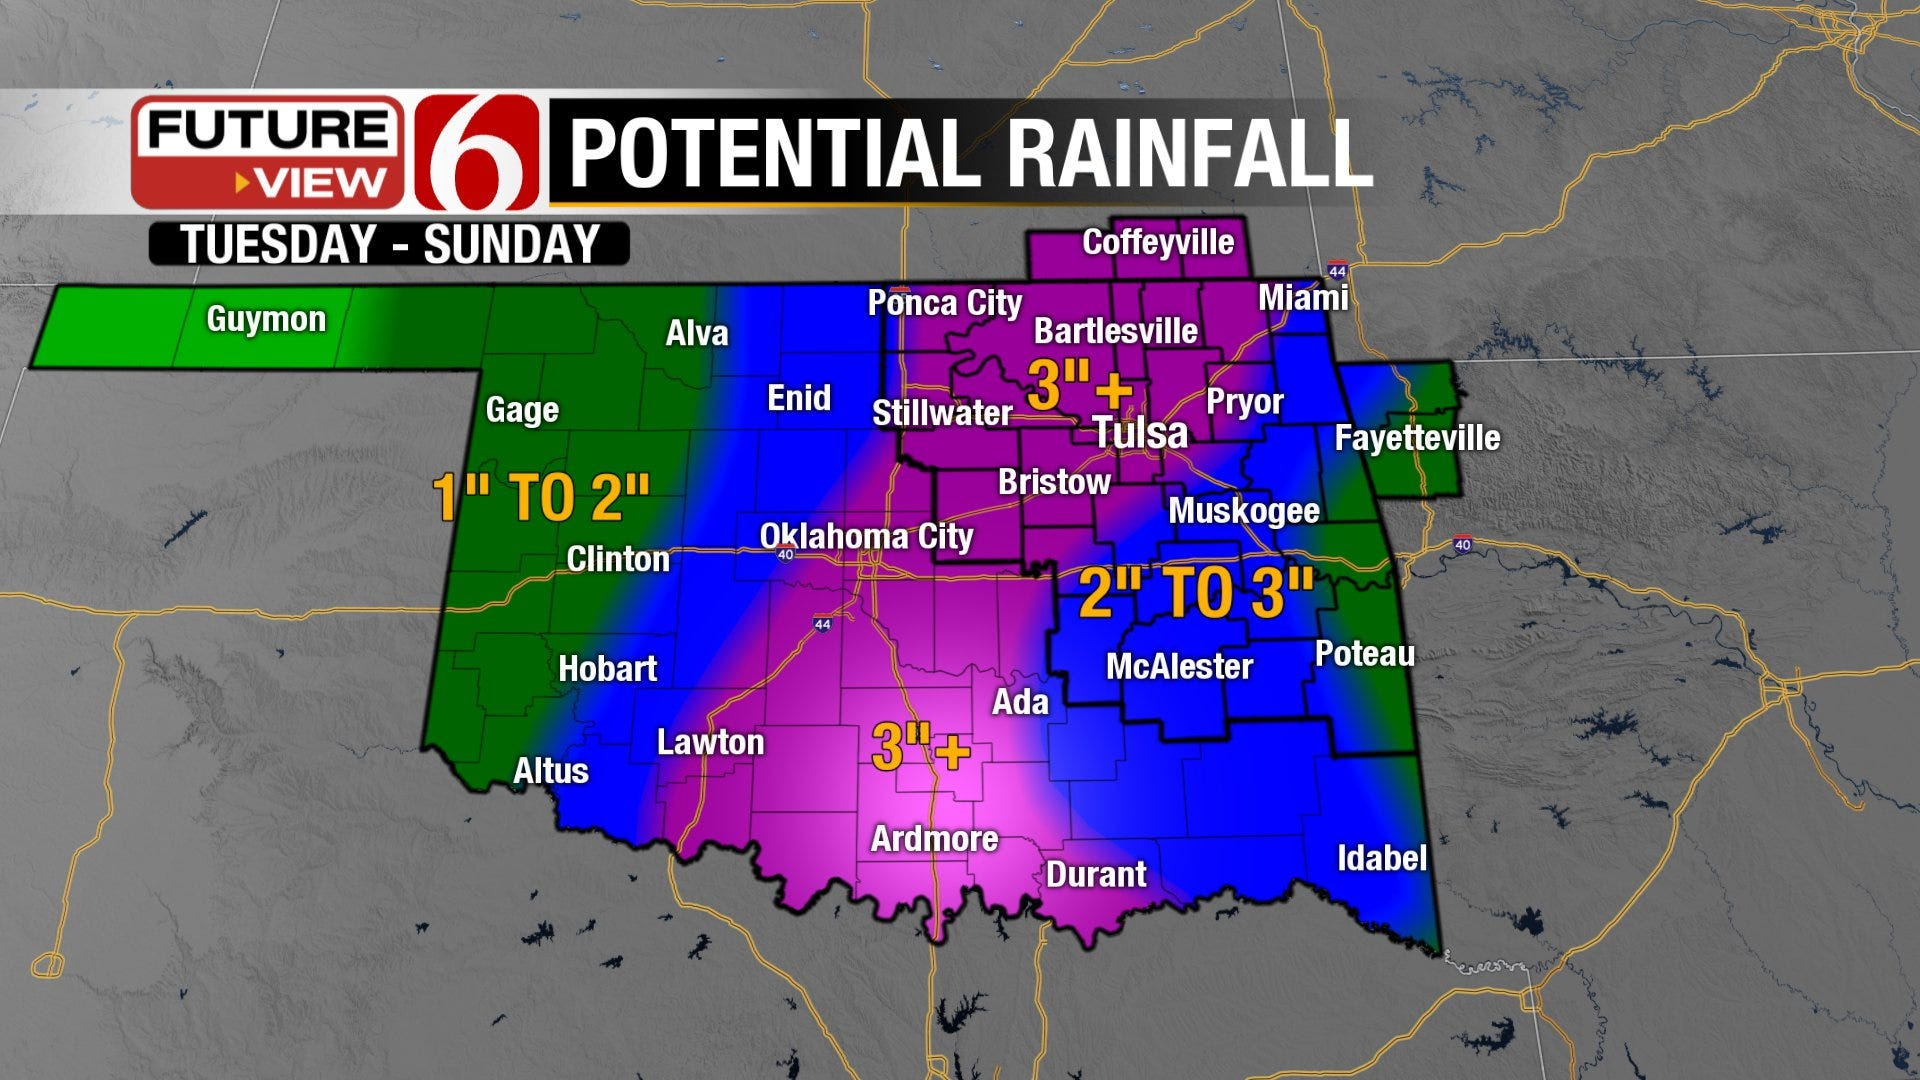 At Peak Severe Weather Season, More Storms on the Way